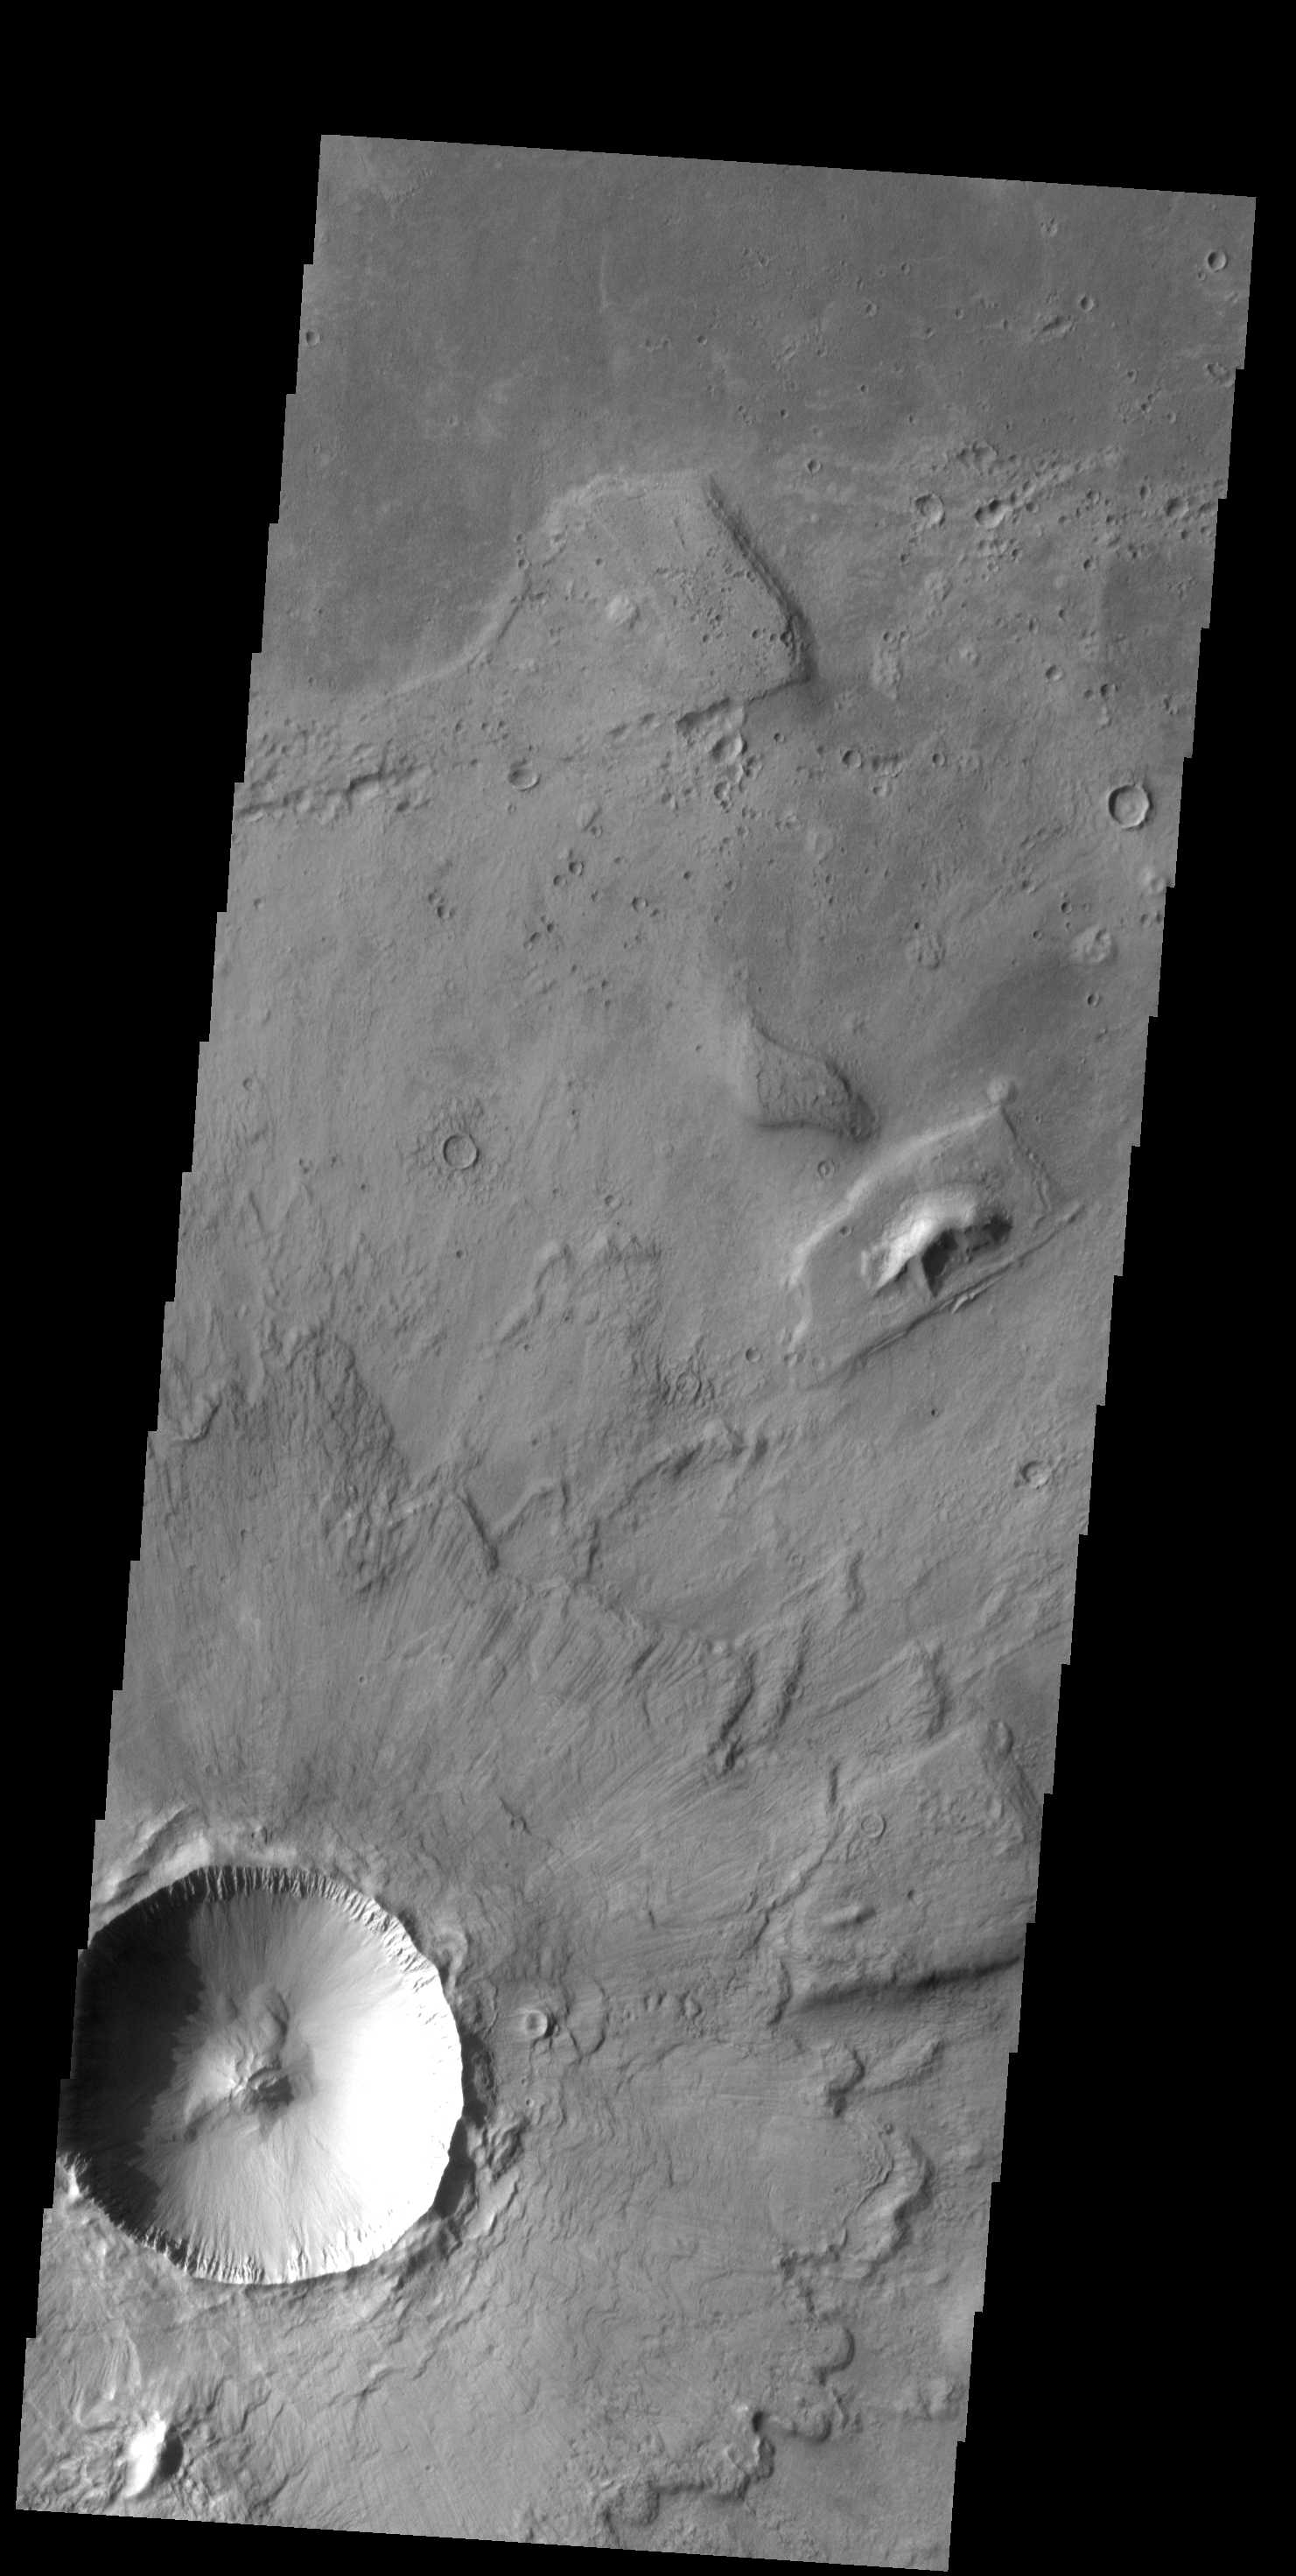 Crater Ejecta | Mars Odyssey Mission THEMIS